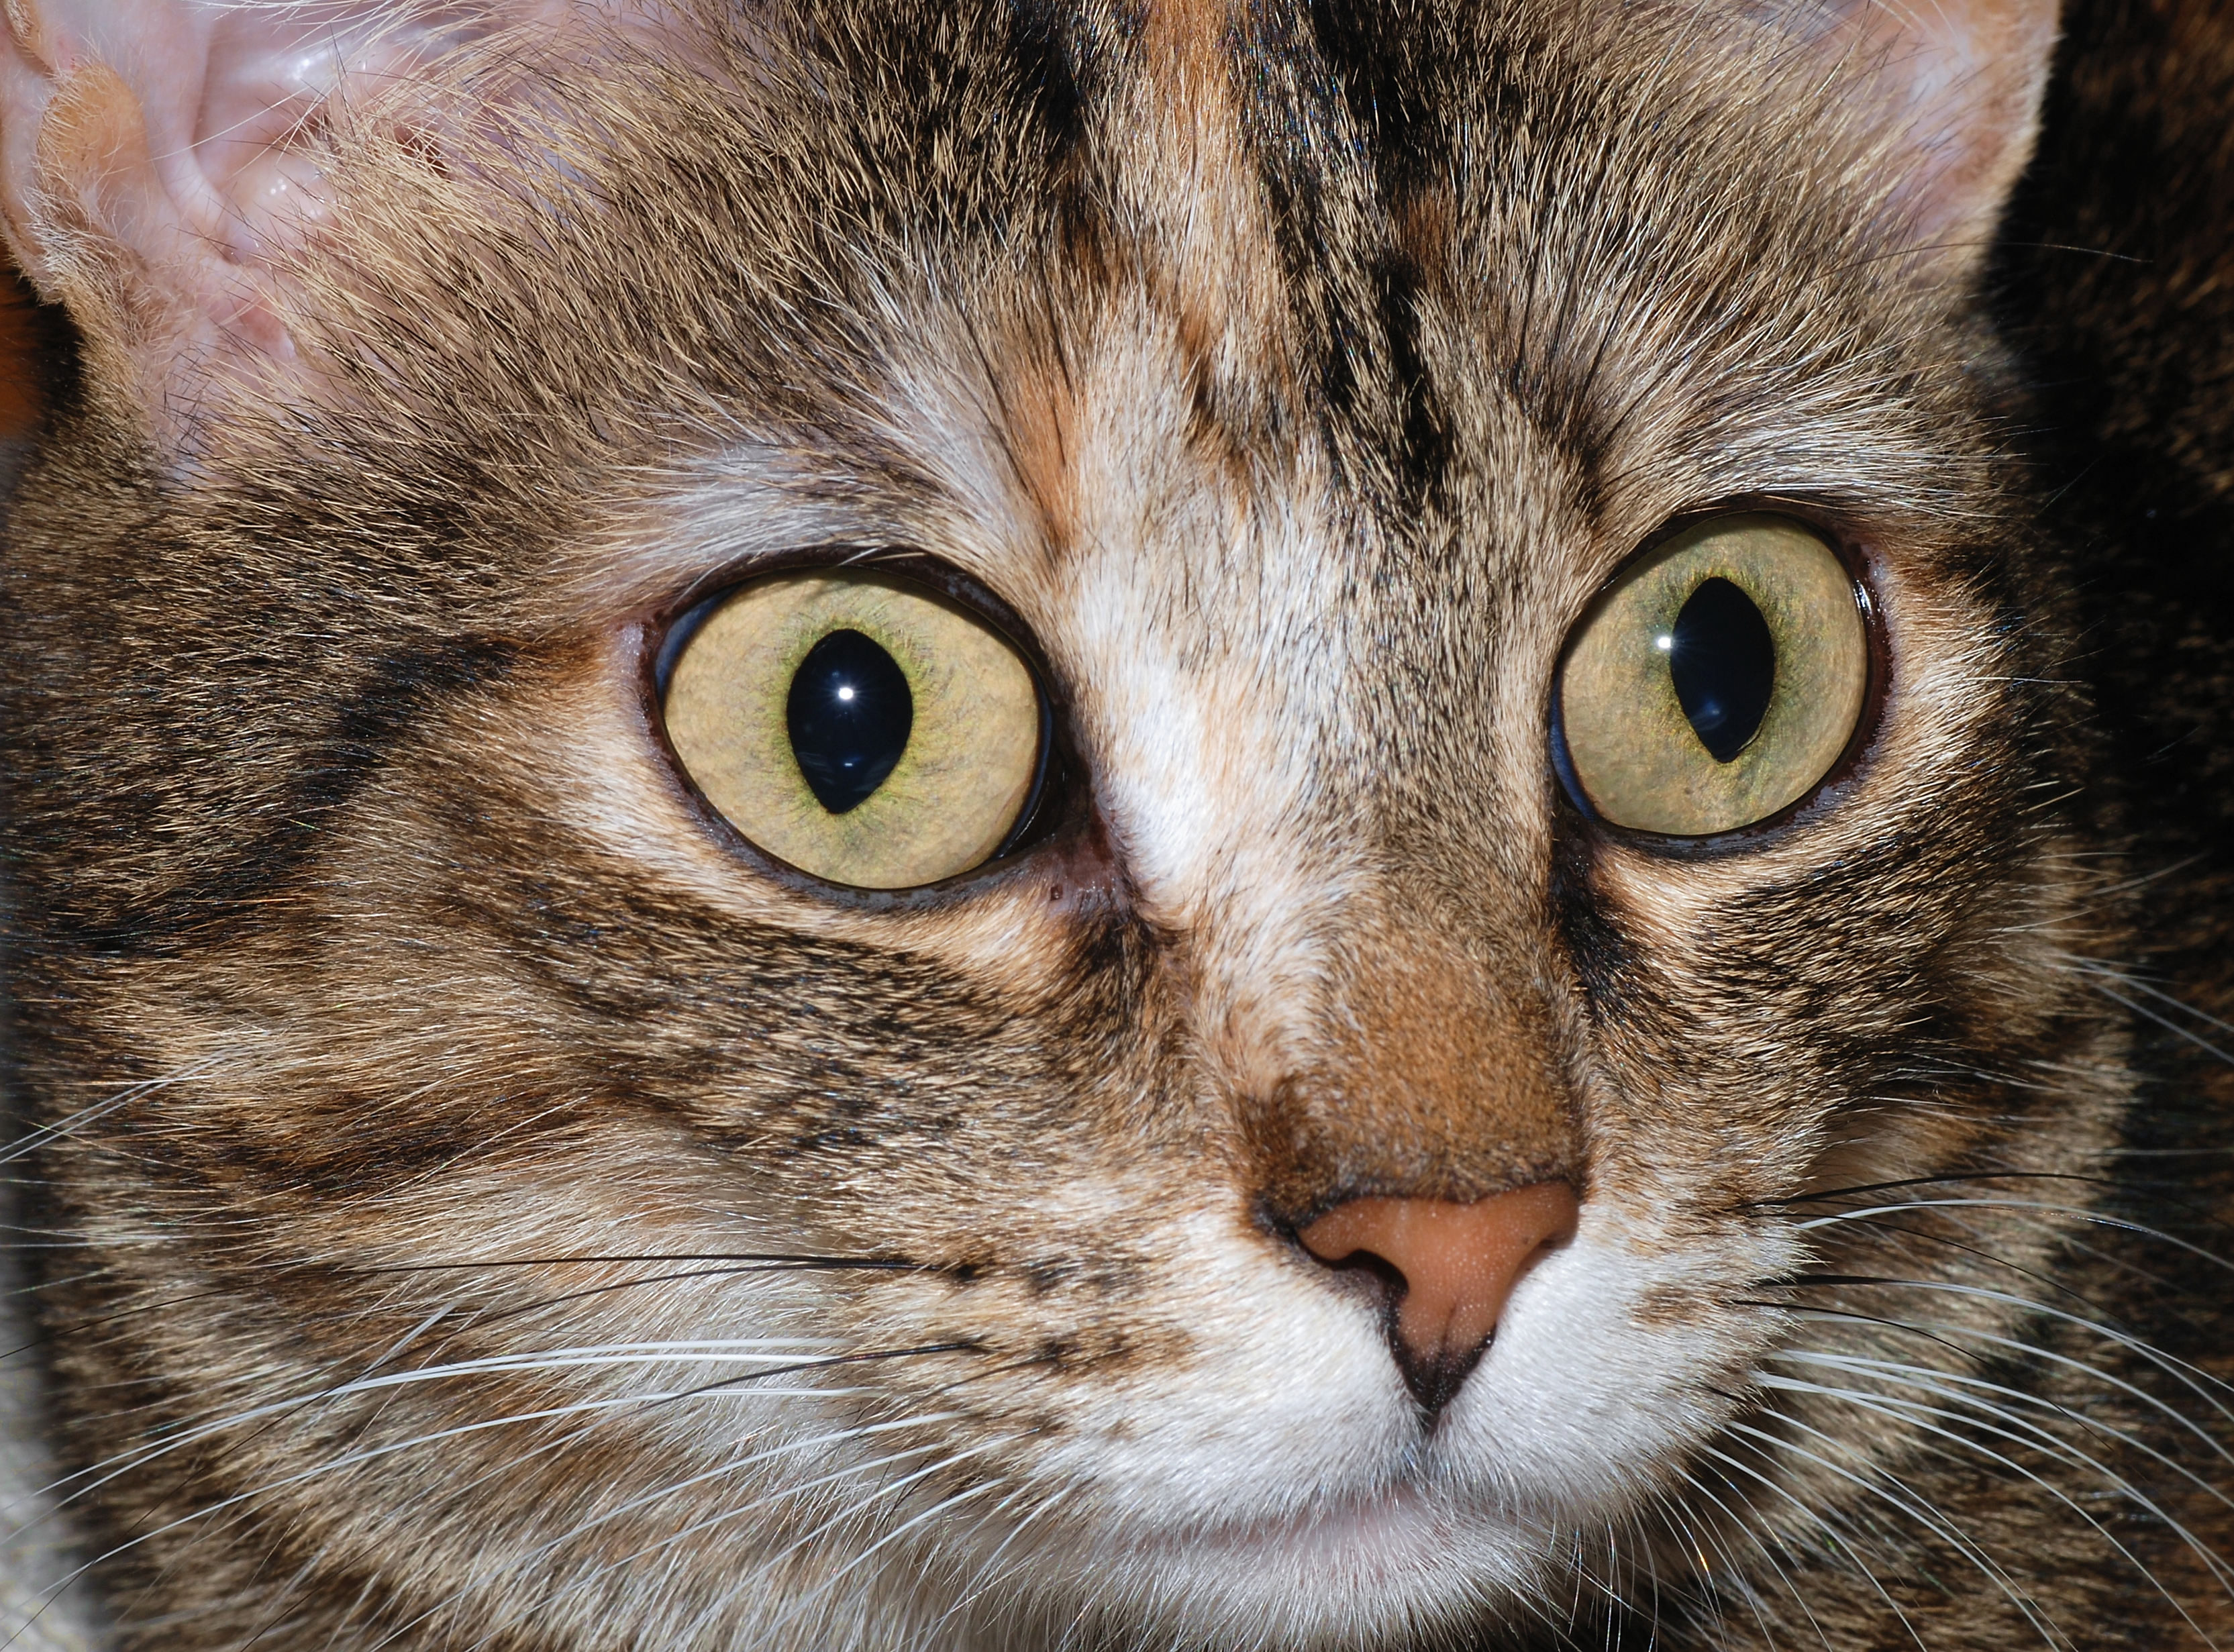 File:Cat eyes 2007-1.jpg - Wikimedia Commons